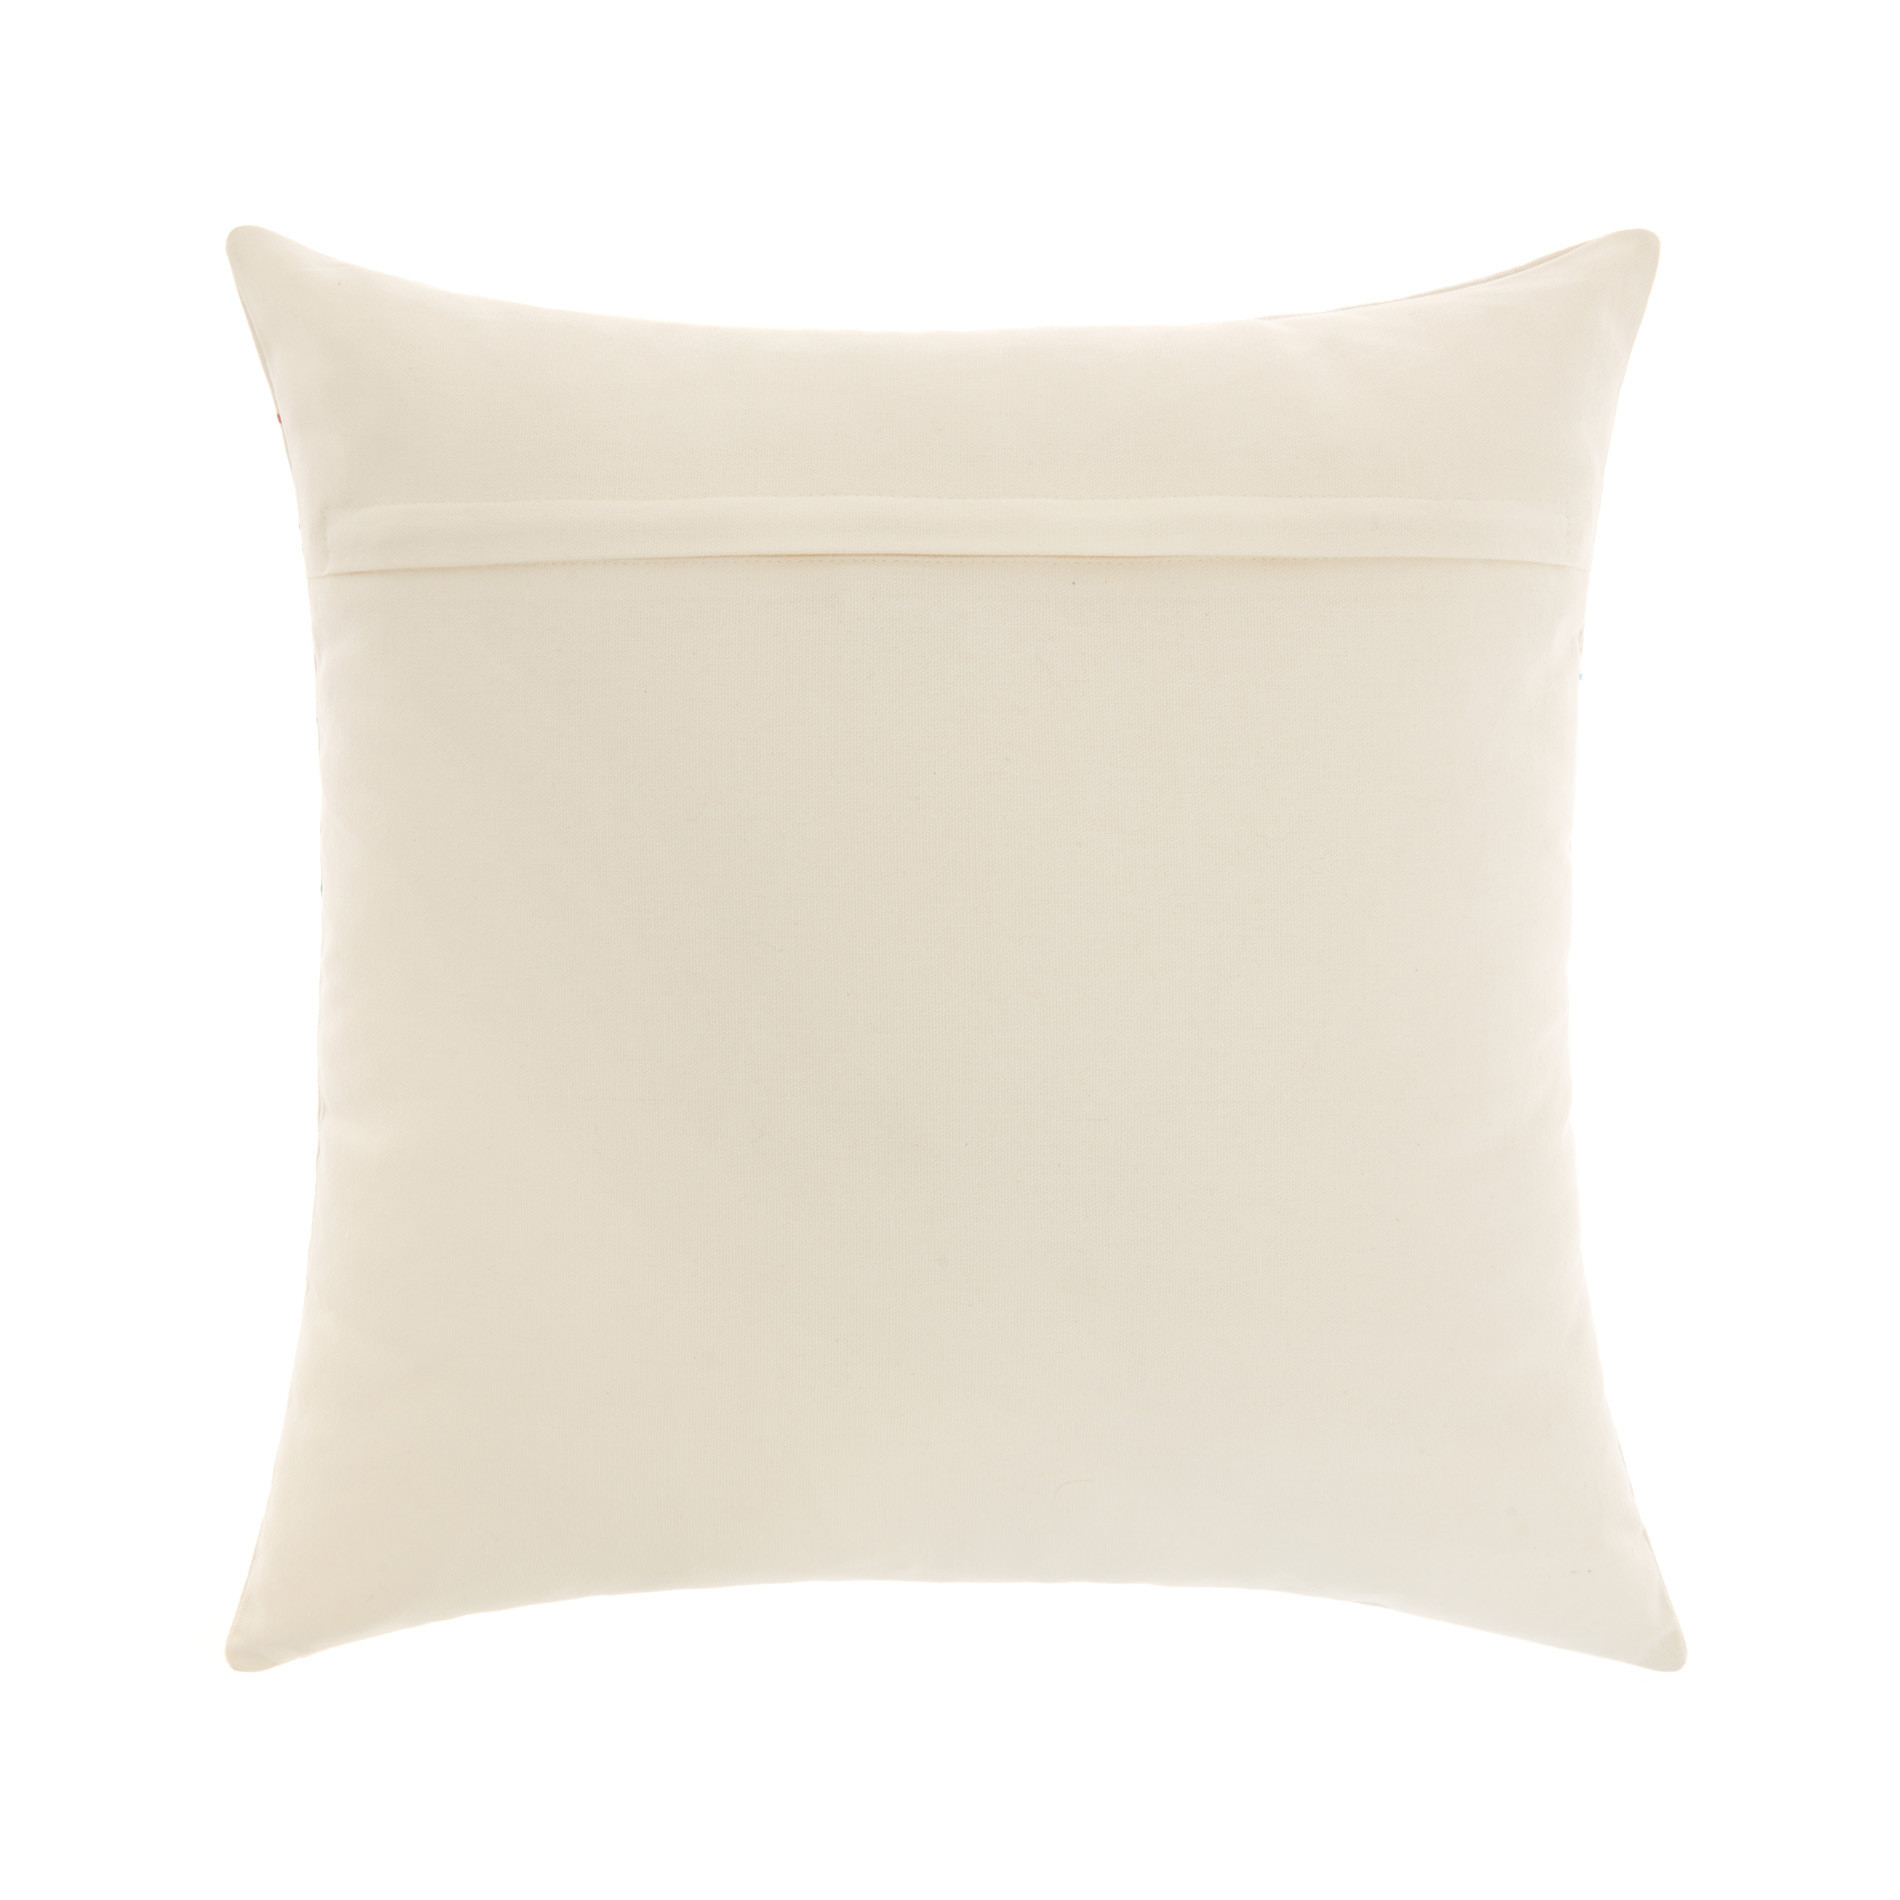 Cuscino Love con ricami 45x45cm, Bianco, large image number 1